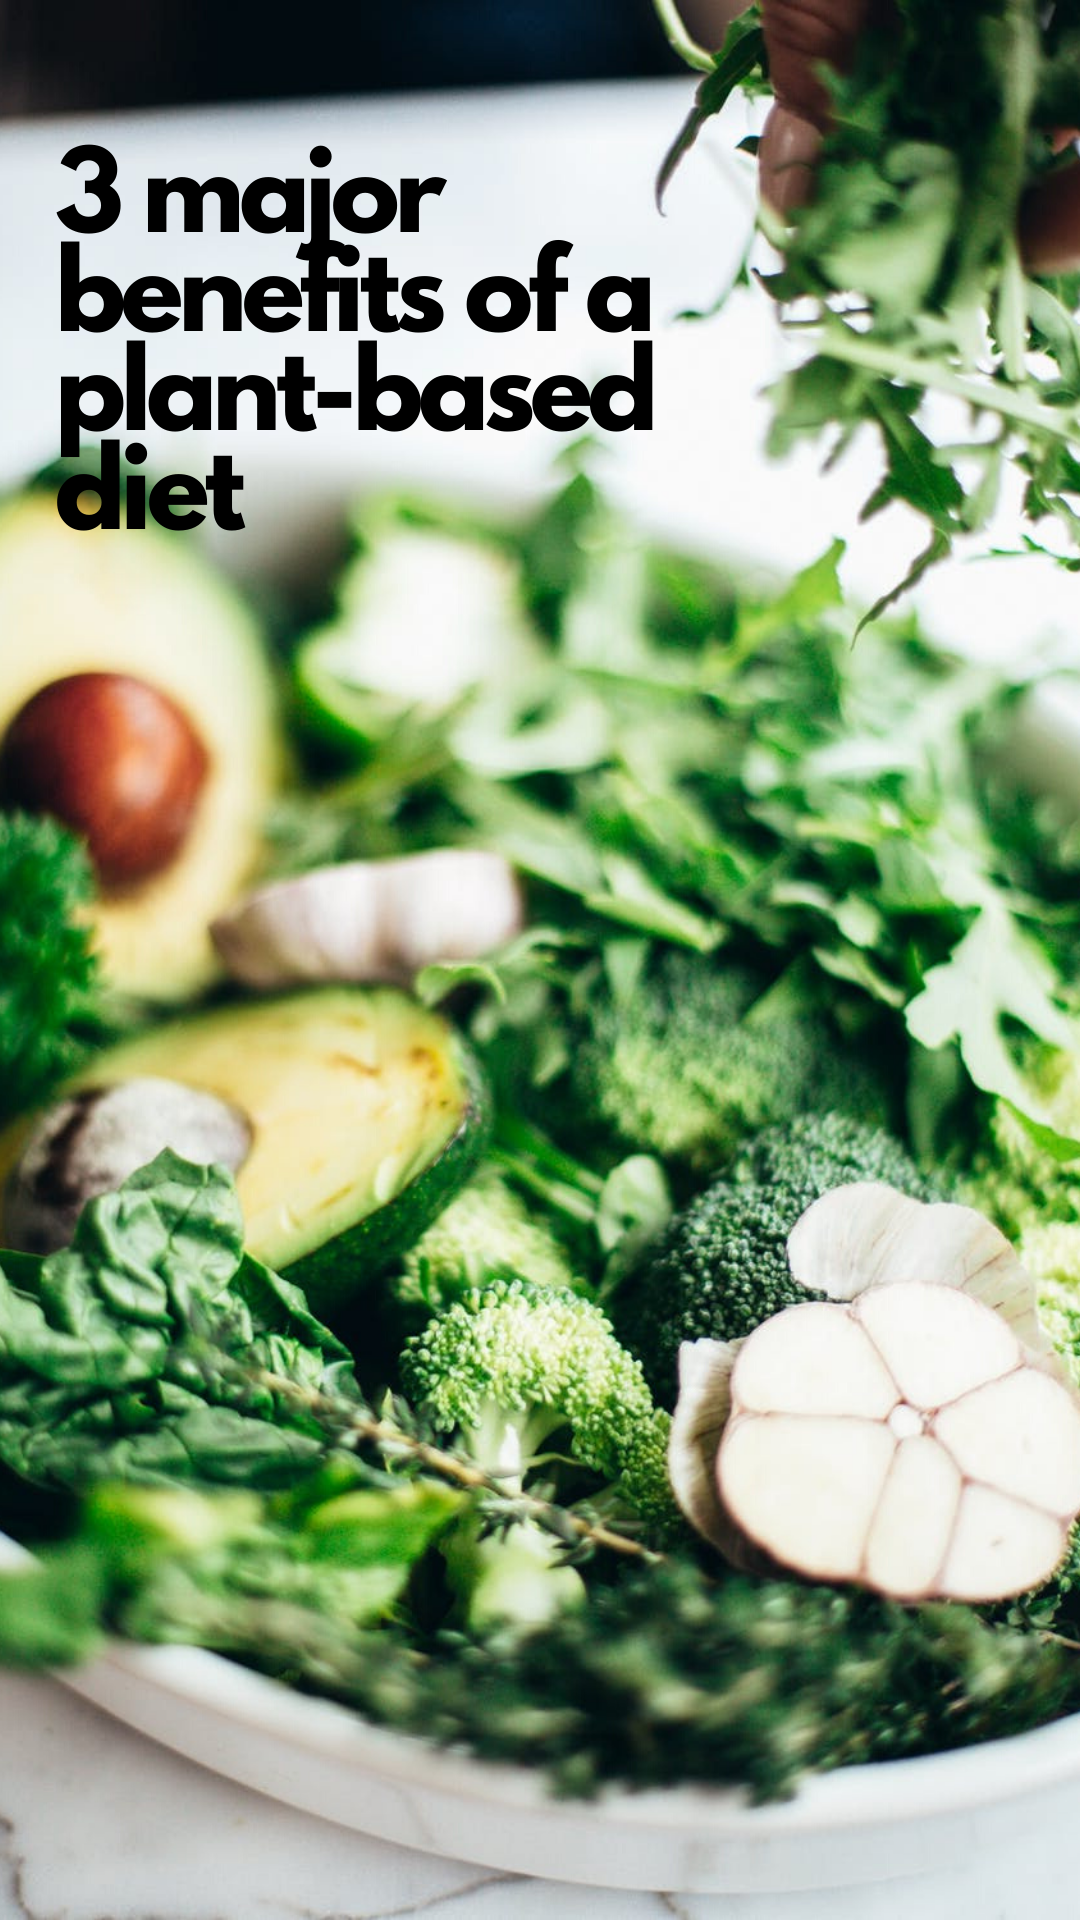 3 major benefits of a plant-based  diet